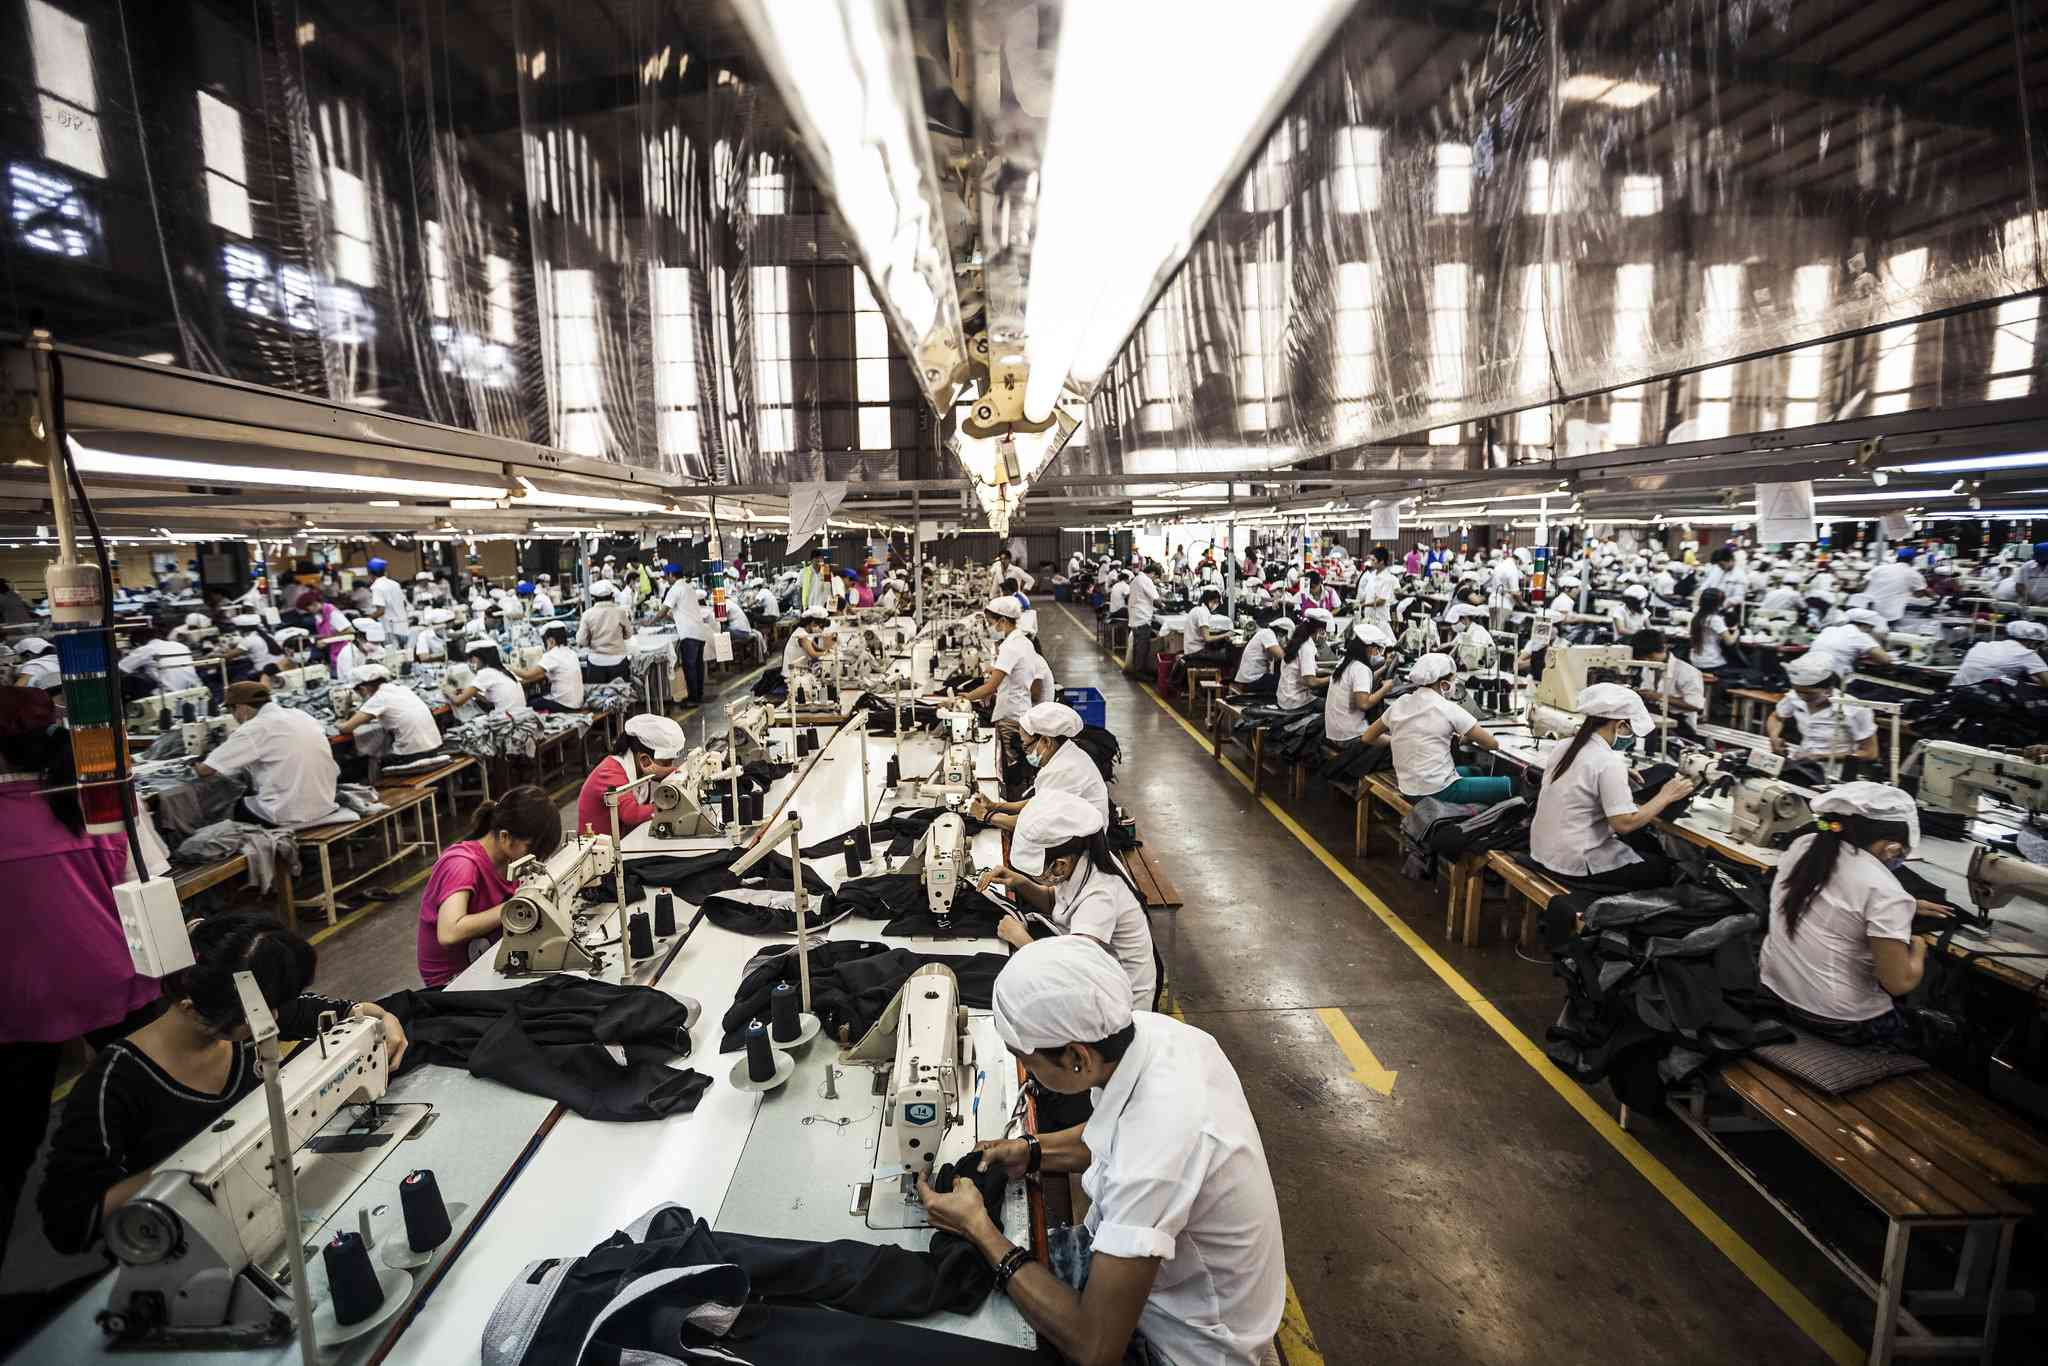 Photo of garment workers by Aaron Santos / ILO Asia-Pacific / Flickr